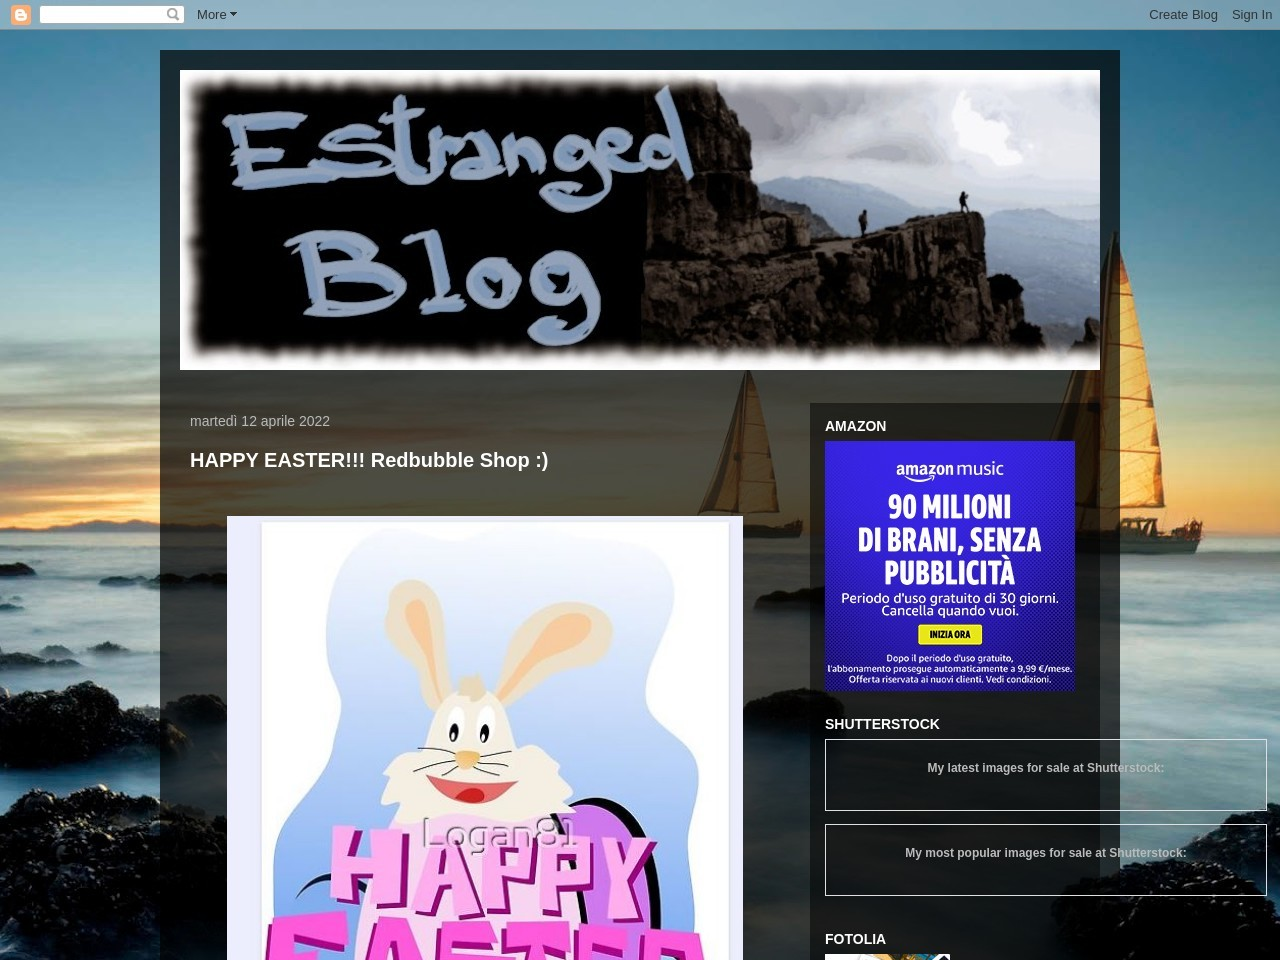 estranged-blog